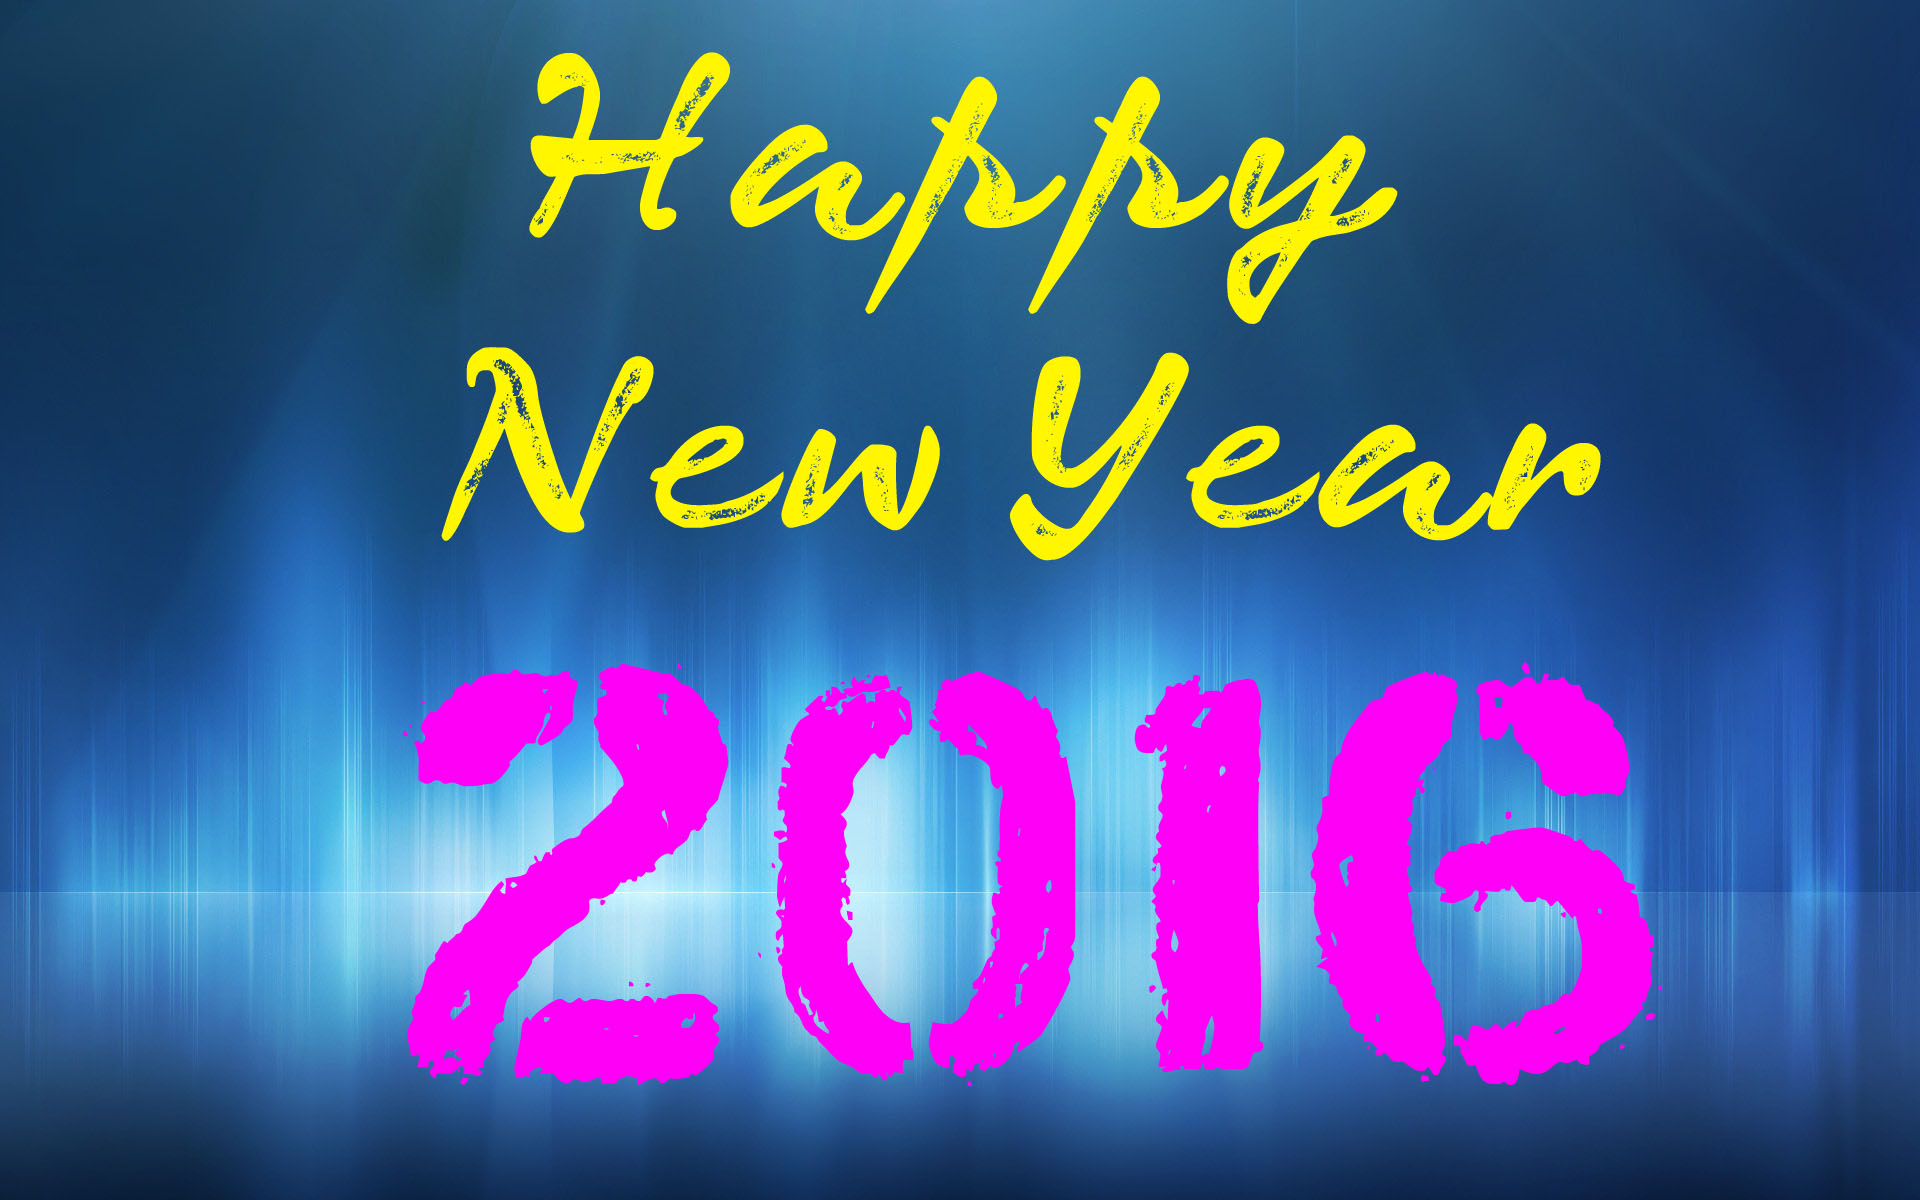 Happy New Year 2016 HD Wallpapers Images Download 1920x1200